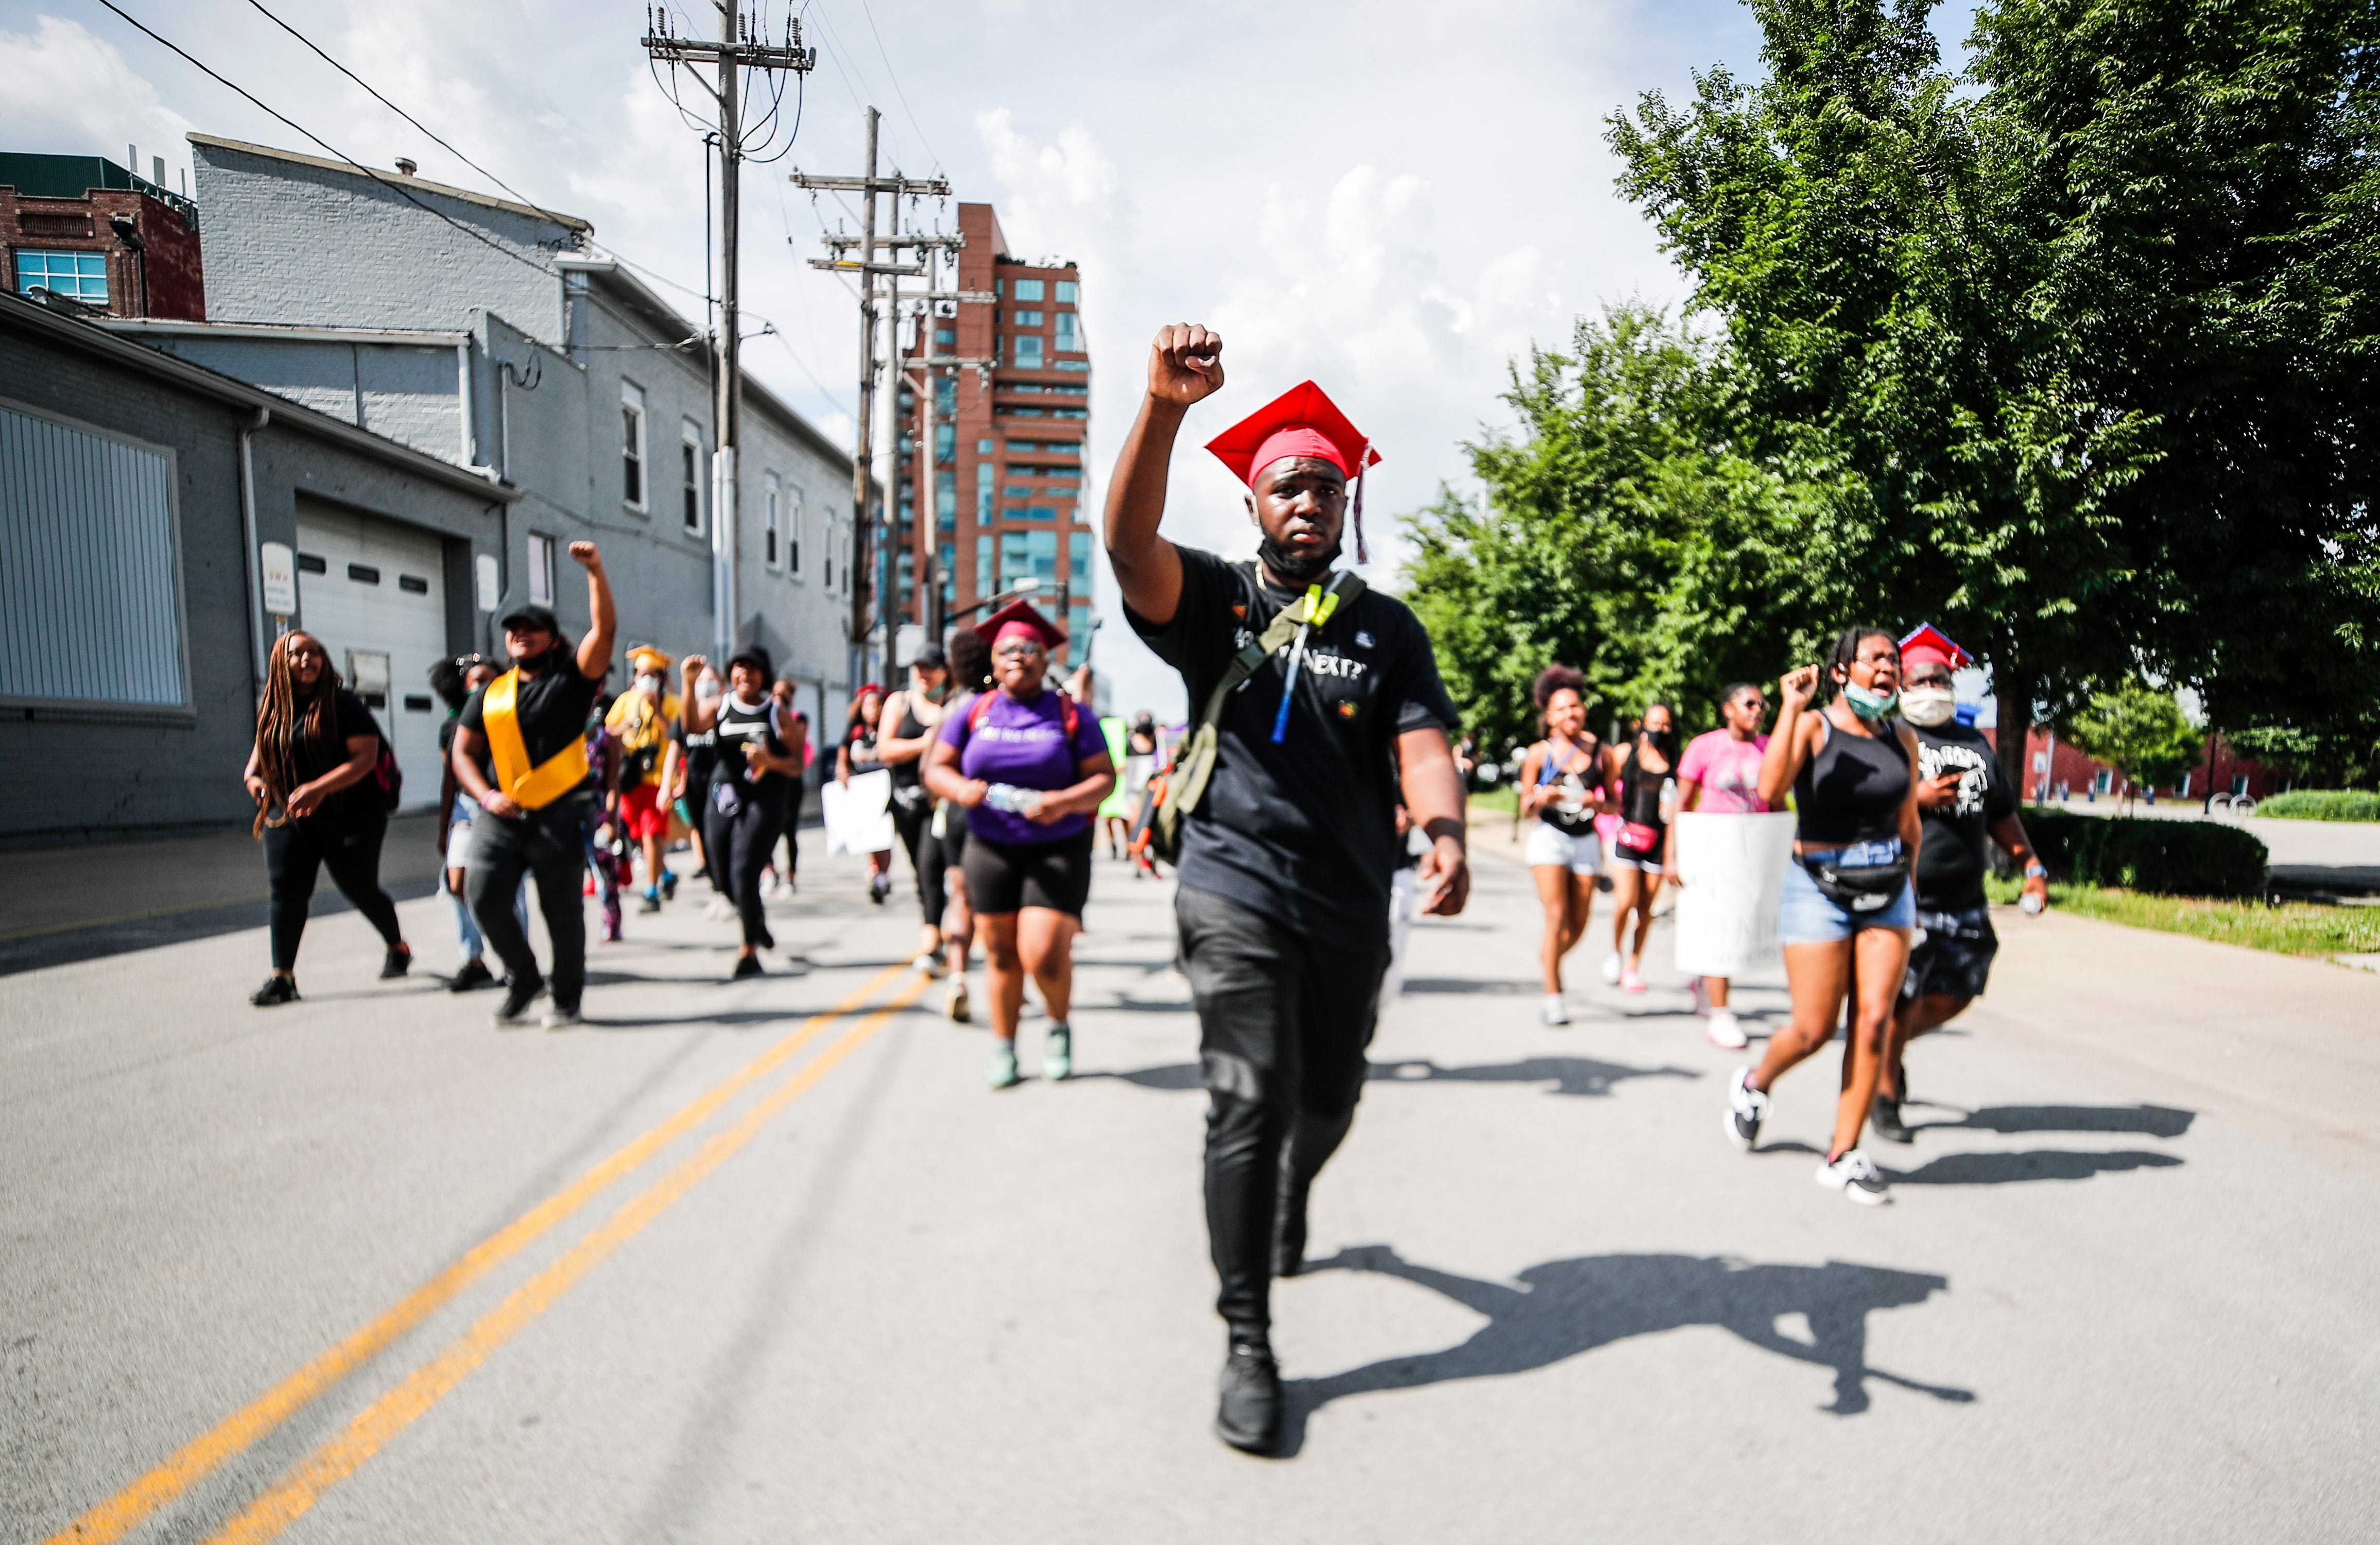 """""""We're marching for something bigger,"""" said Savion Briggs, a 2020 Butler High School graduate. """"Only way we're going to stop racism is solidarity. I shouldn't have to fear for my life just for the way I look."""" Briggs, among others, decided to wear their graduation caps as they marched and spoke for justice for Breonna Taylor in June 2020."""